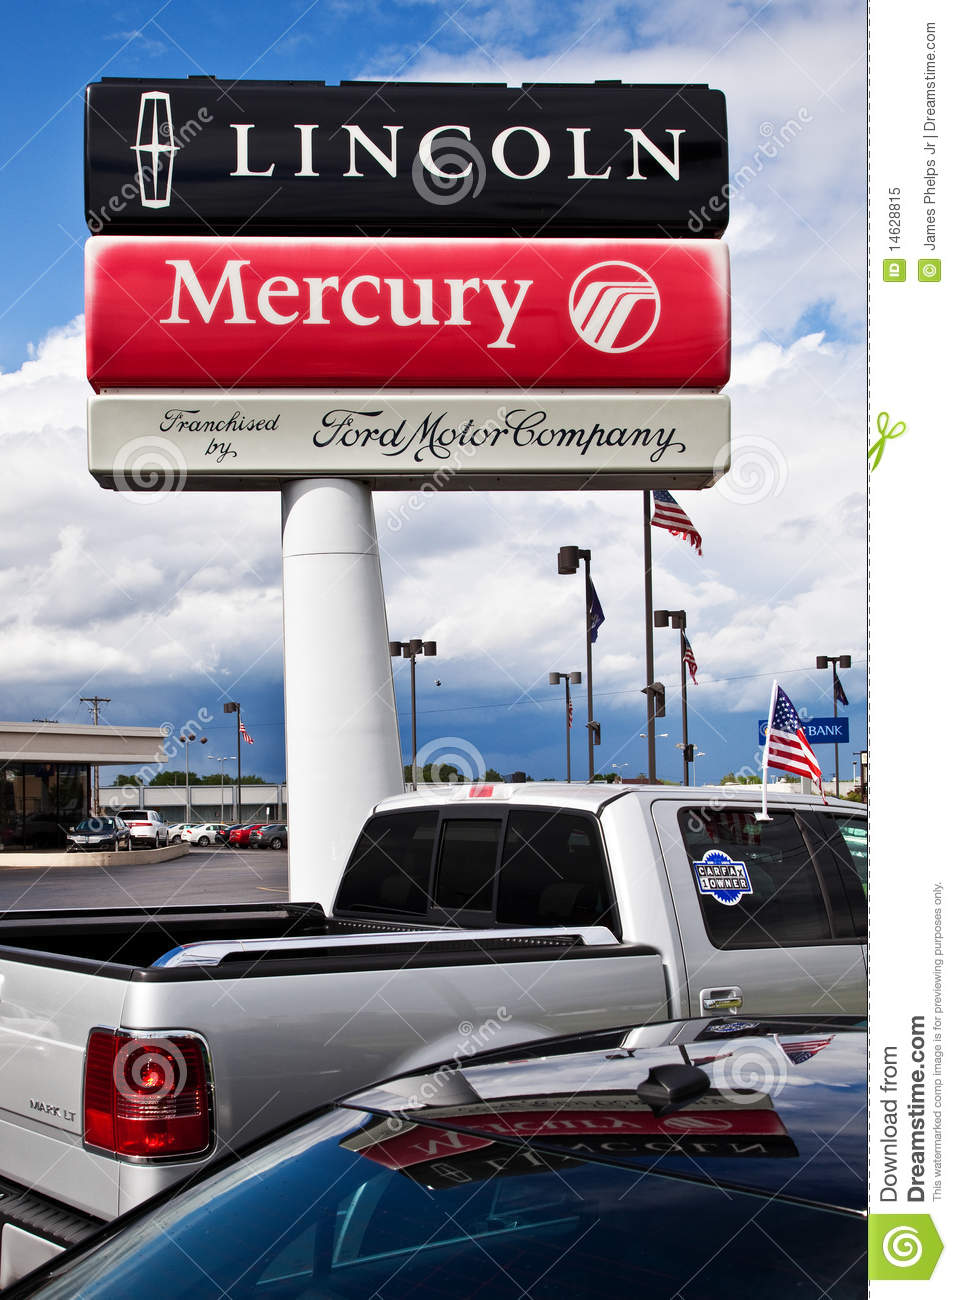 Ford lincoln mercury dealership sign editorial image for Ford motor company credit card